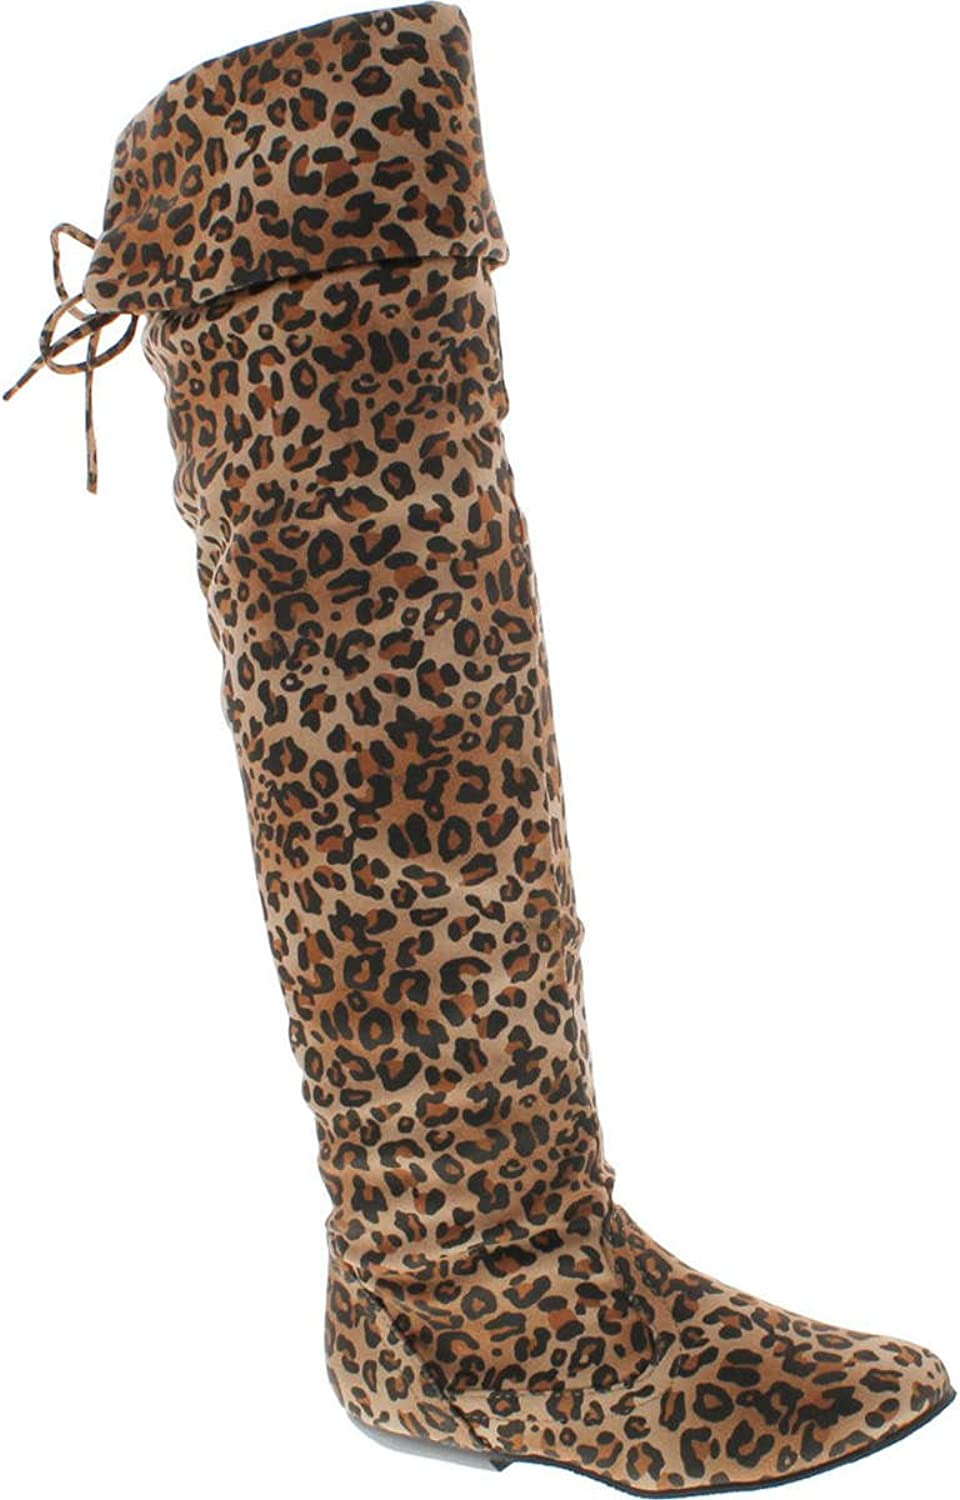 Lolli Couture Forever Link Womens Tammy-58 Faux Suede Over The Knee Flat Fold Over Boots shoes,Camel Leopard,8.5